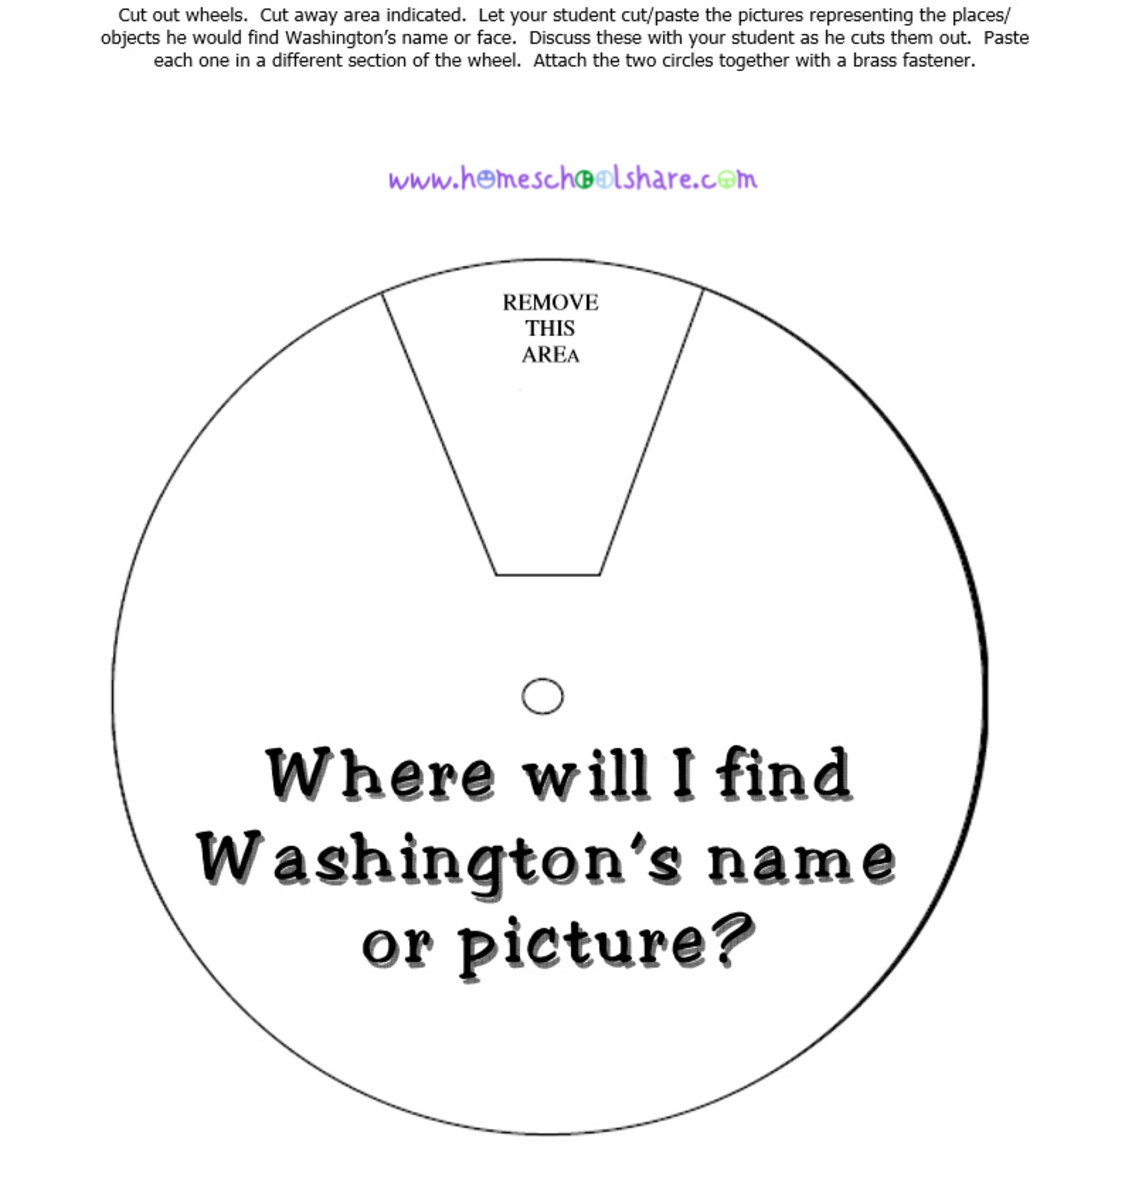 George Washington Wheel from http://www.homeschoolshare .com/president.php